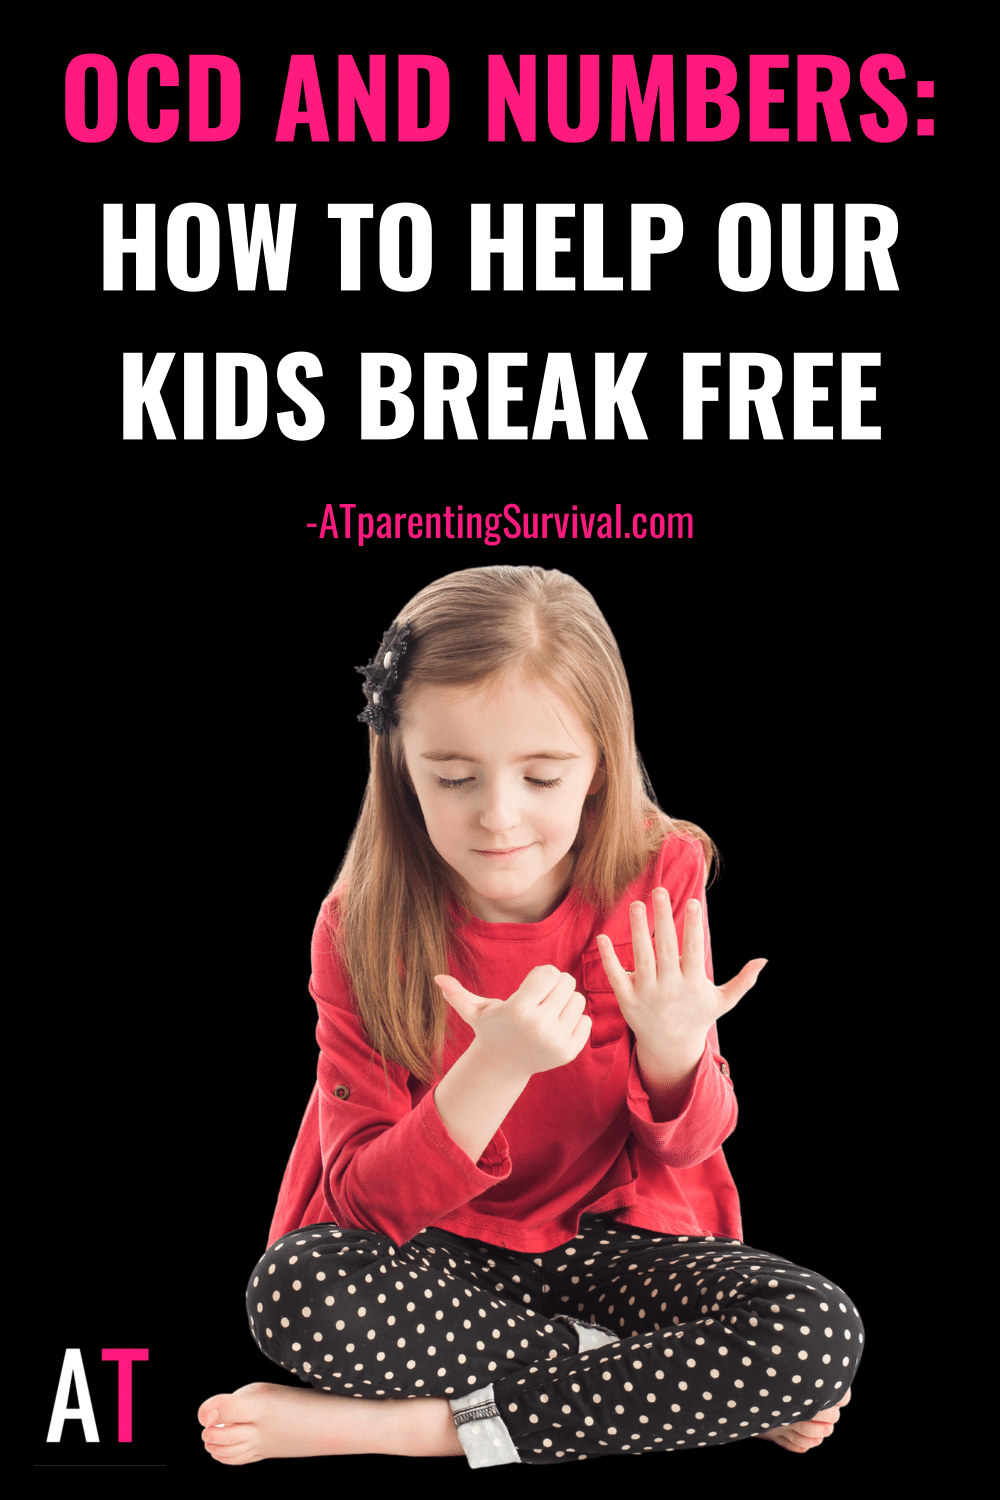 OCD and Numbers: How to Help Our Kids Break Free